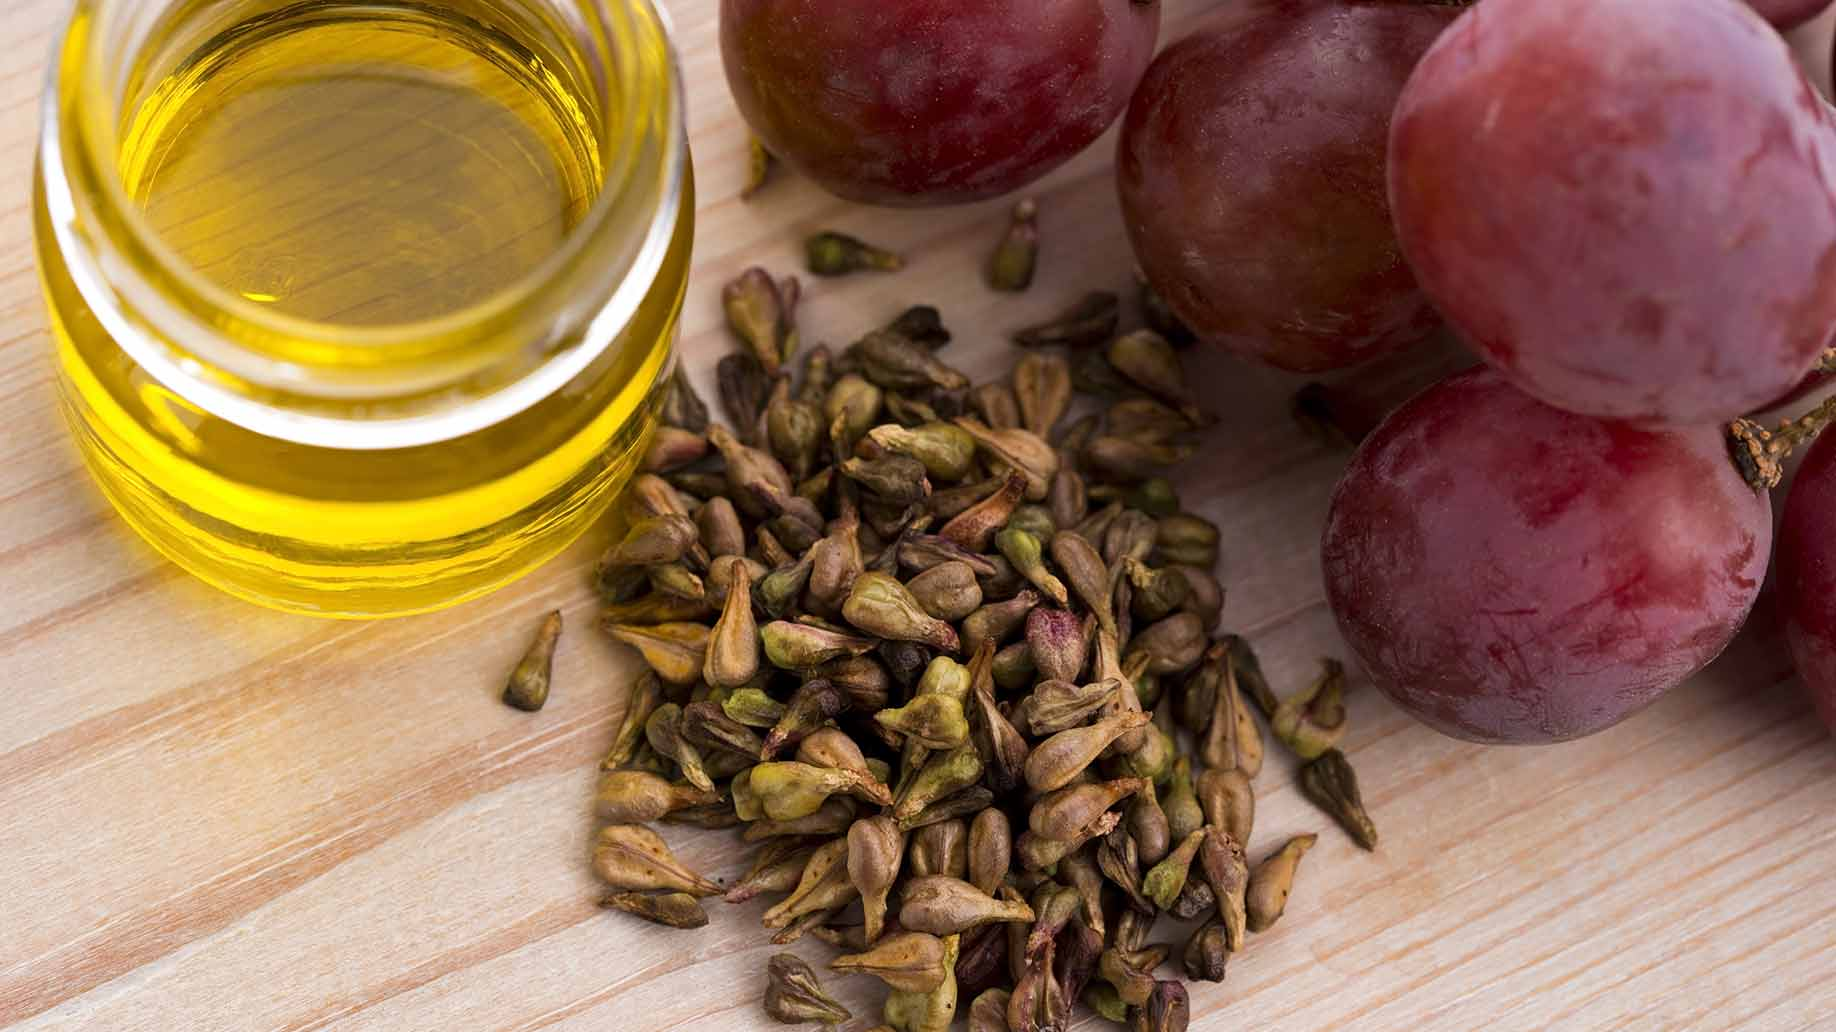 grapeseed oil skin care moisturizers sunscreen diabetes wound healing infections mrsa weight loss antibacterial natural health benefits remedies